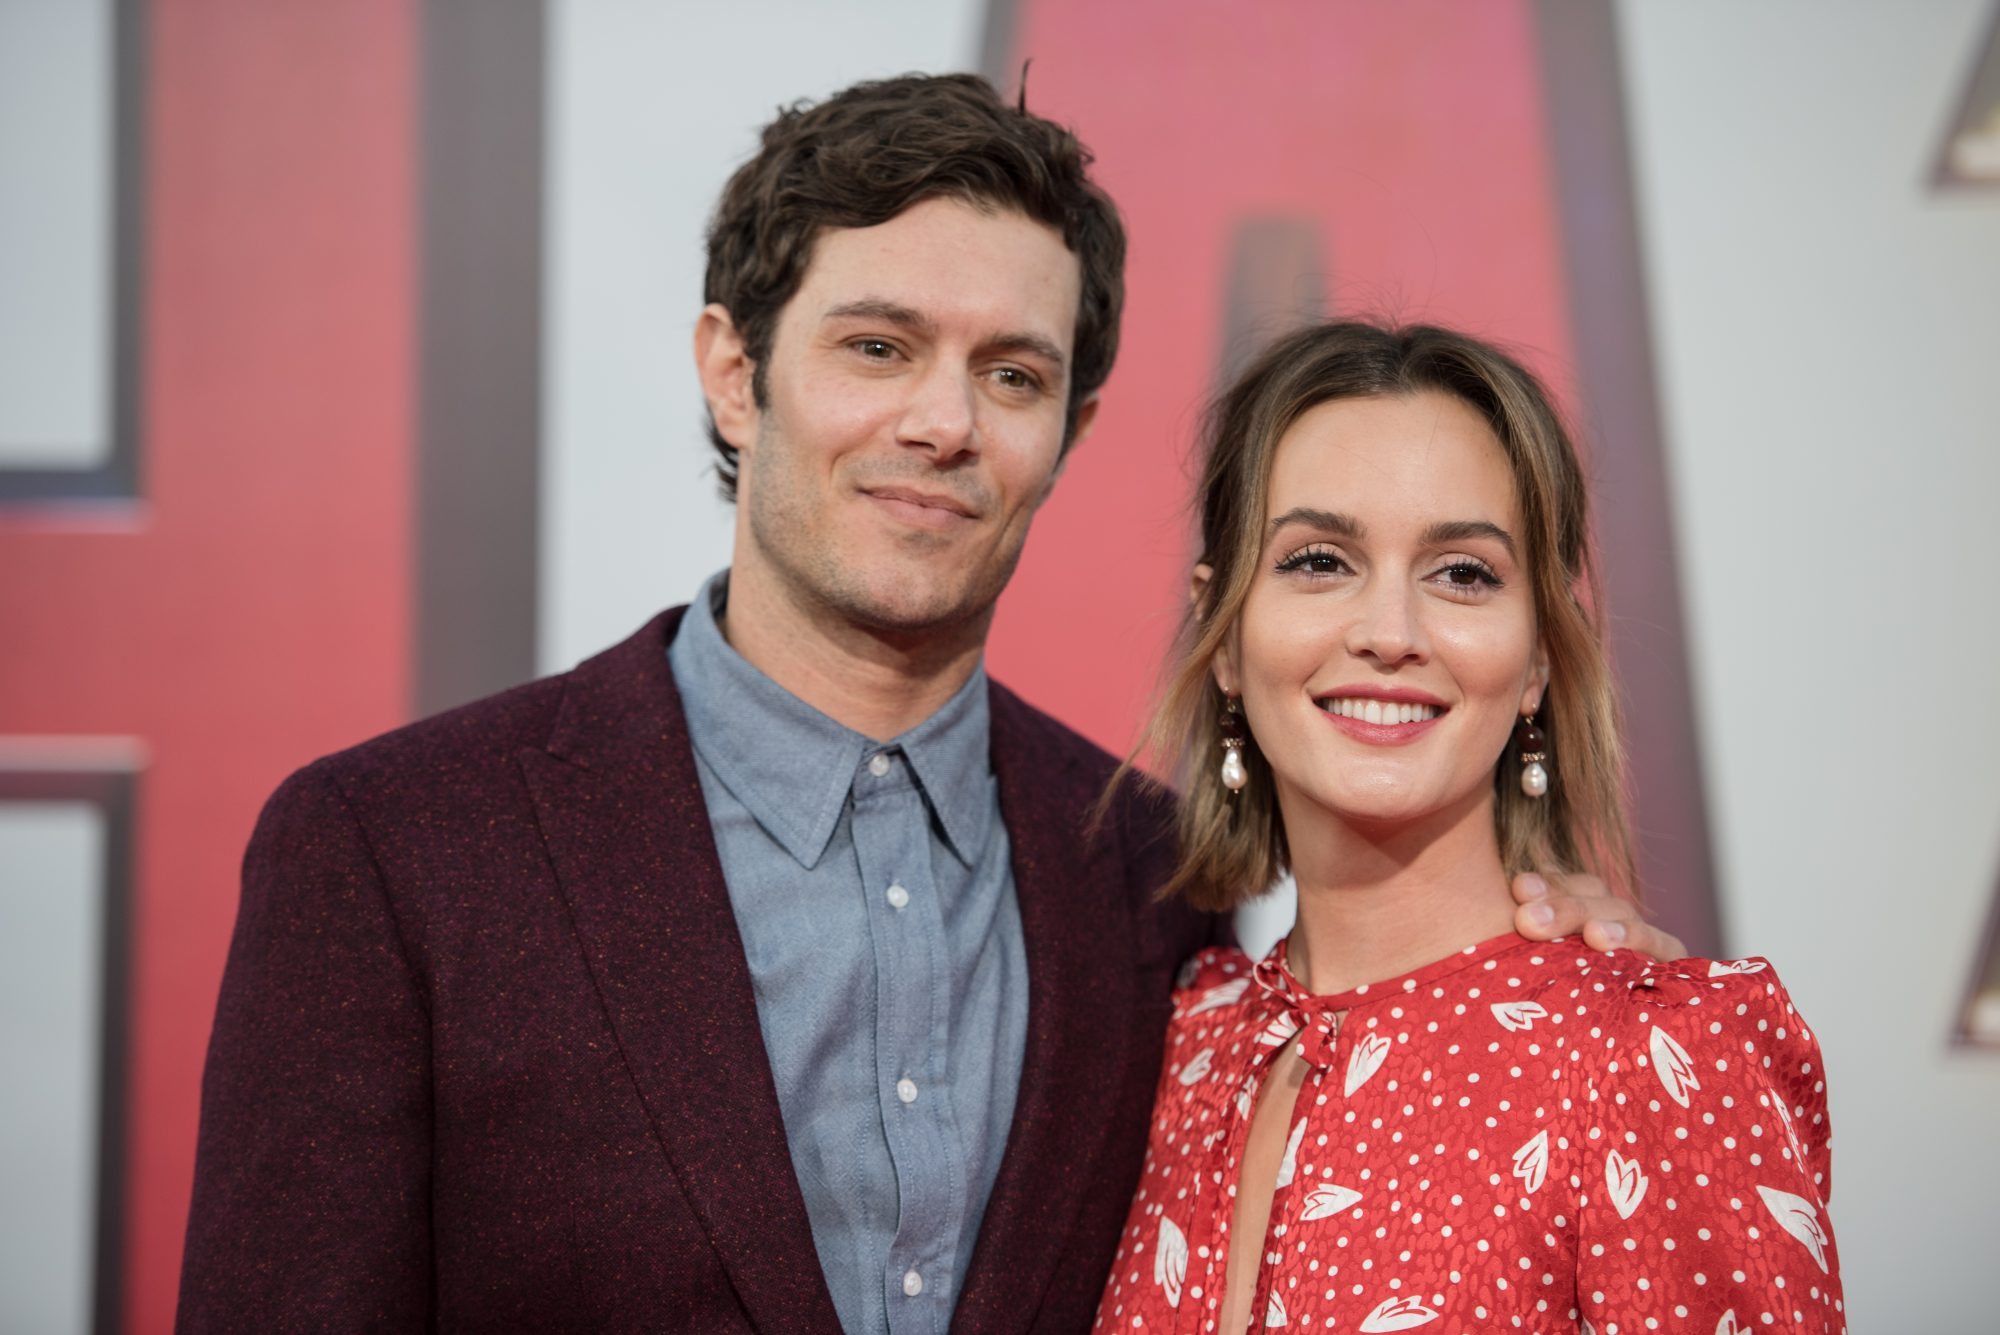 Adam Brody and Leighton Meester